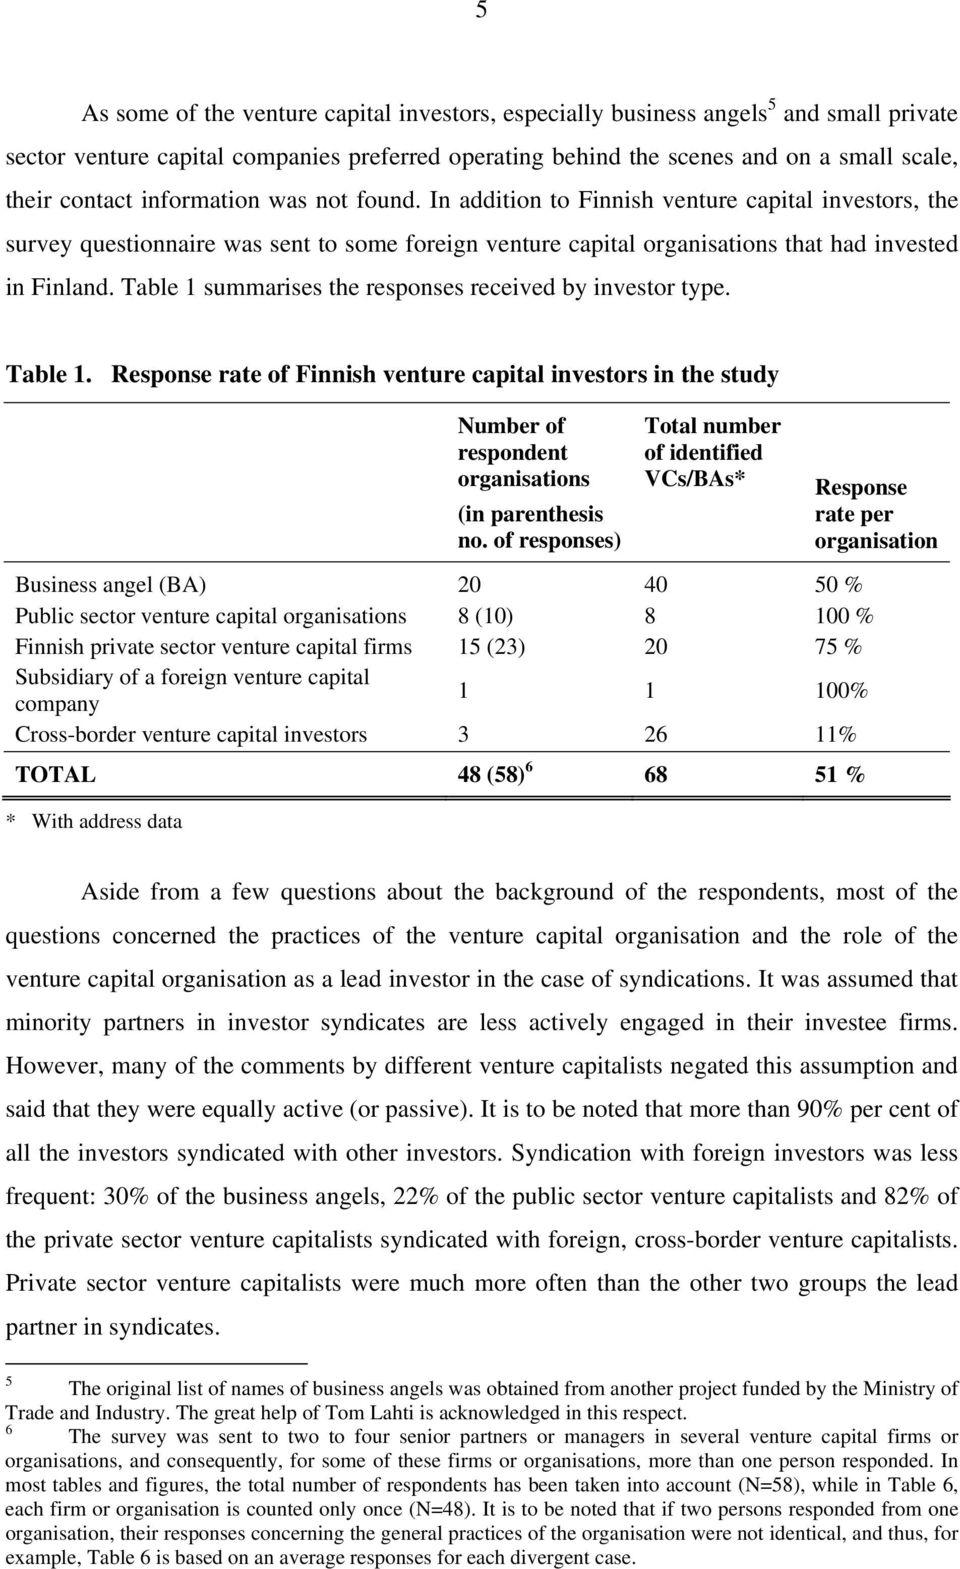 Table 1 summarises the responses received by investor type. Table 1. Response rate of Finnish venture capital investors in the study Number of respondent organisations (in parenthesis no.